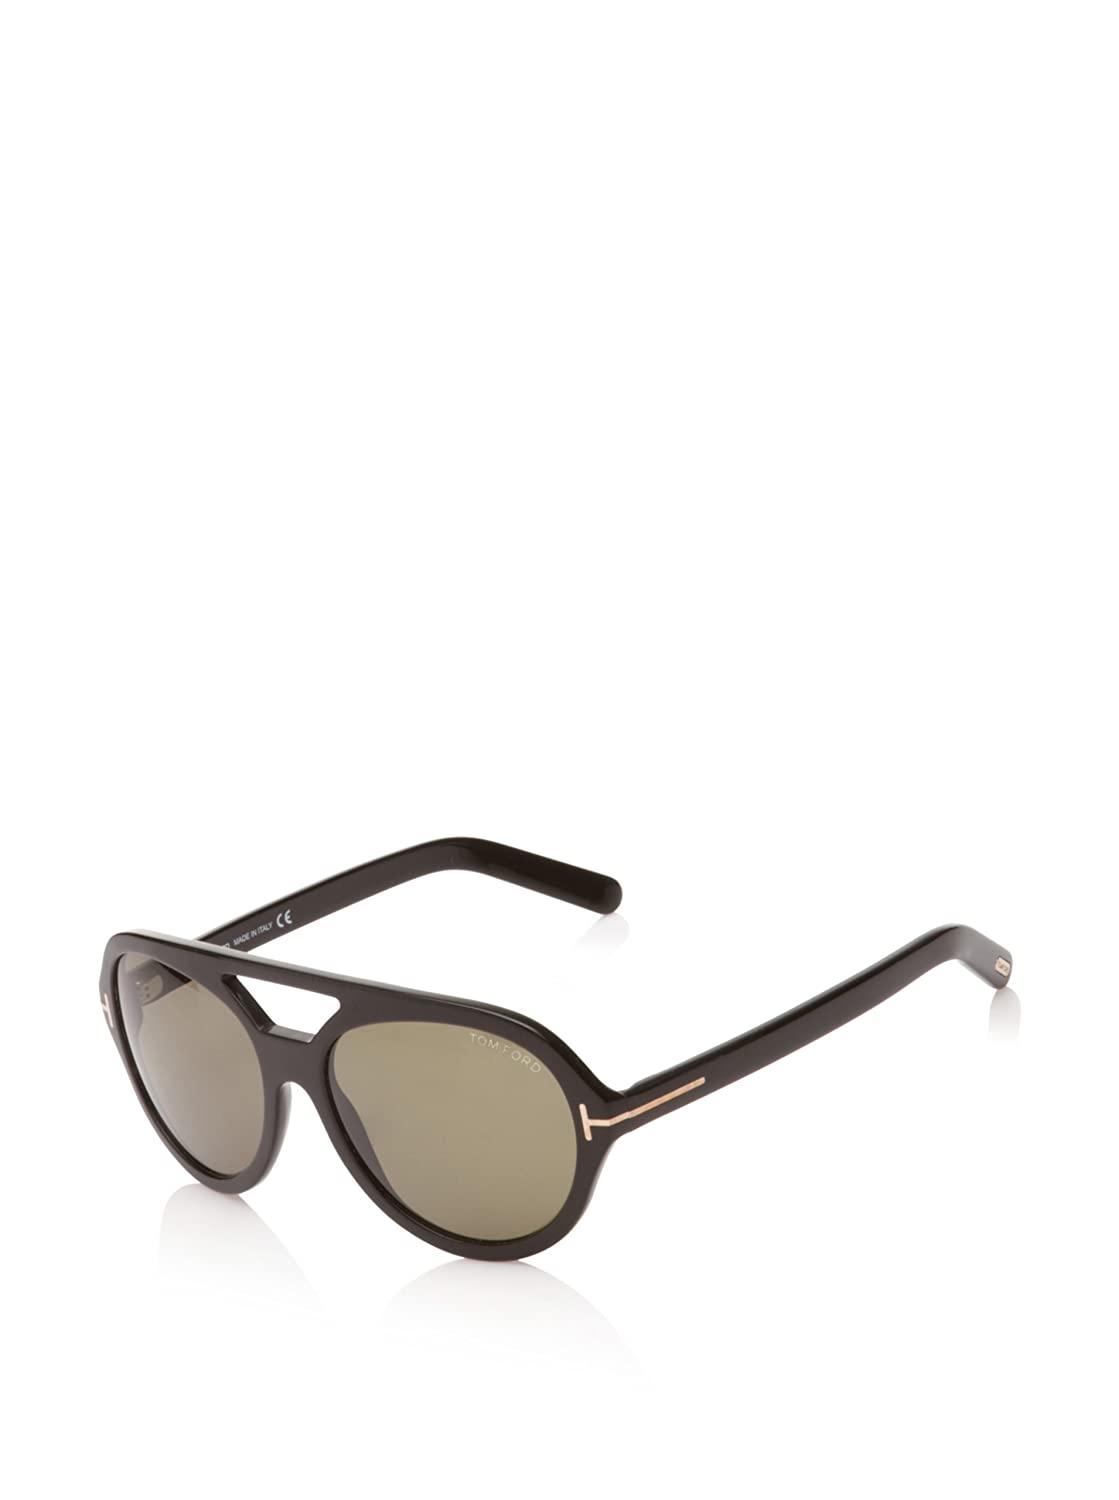 Tom Ford Sunglasses TF 141 Henri - 01N Black (Green Lens) - 57mm   Amazon.in  Clothing   Accessories 00db15b99c78